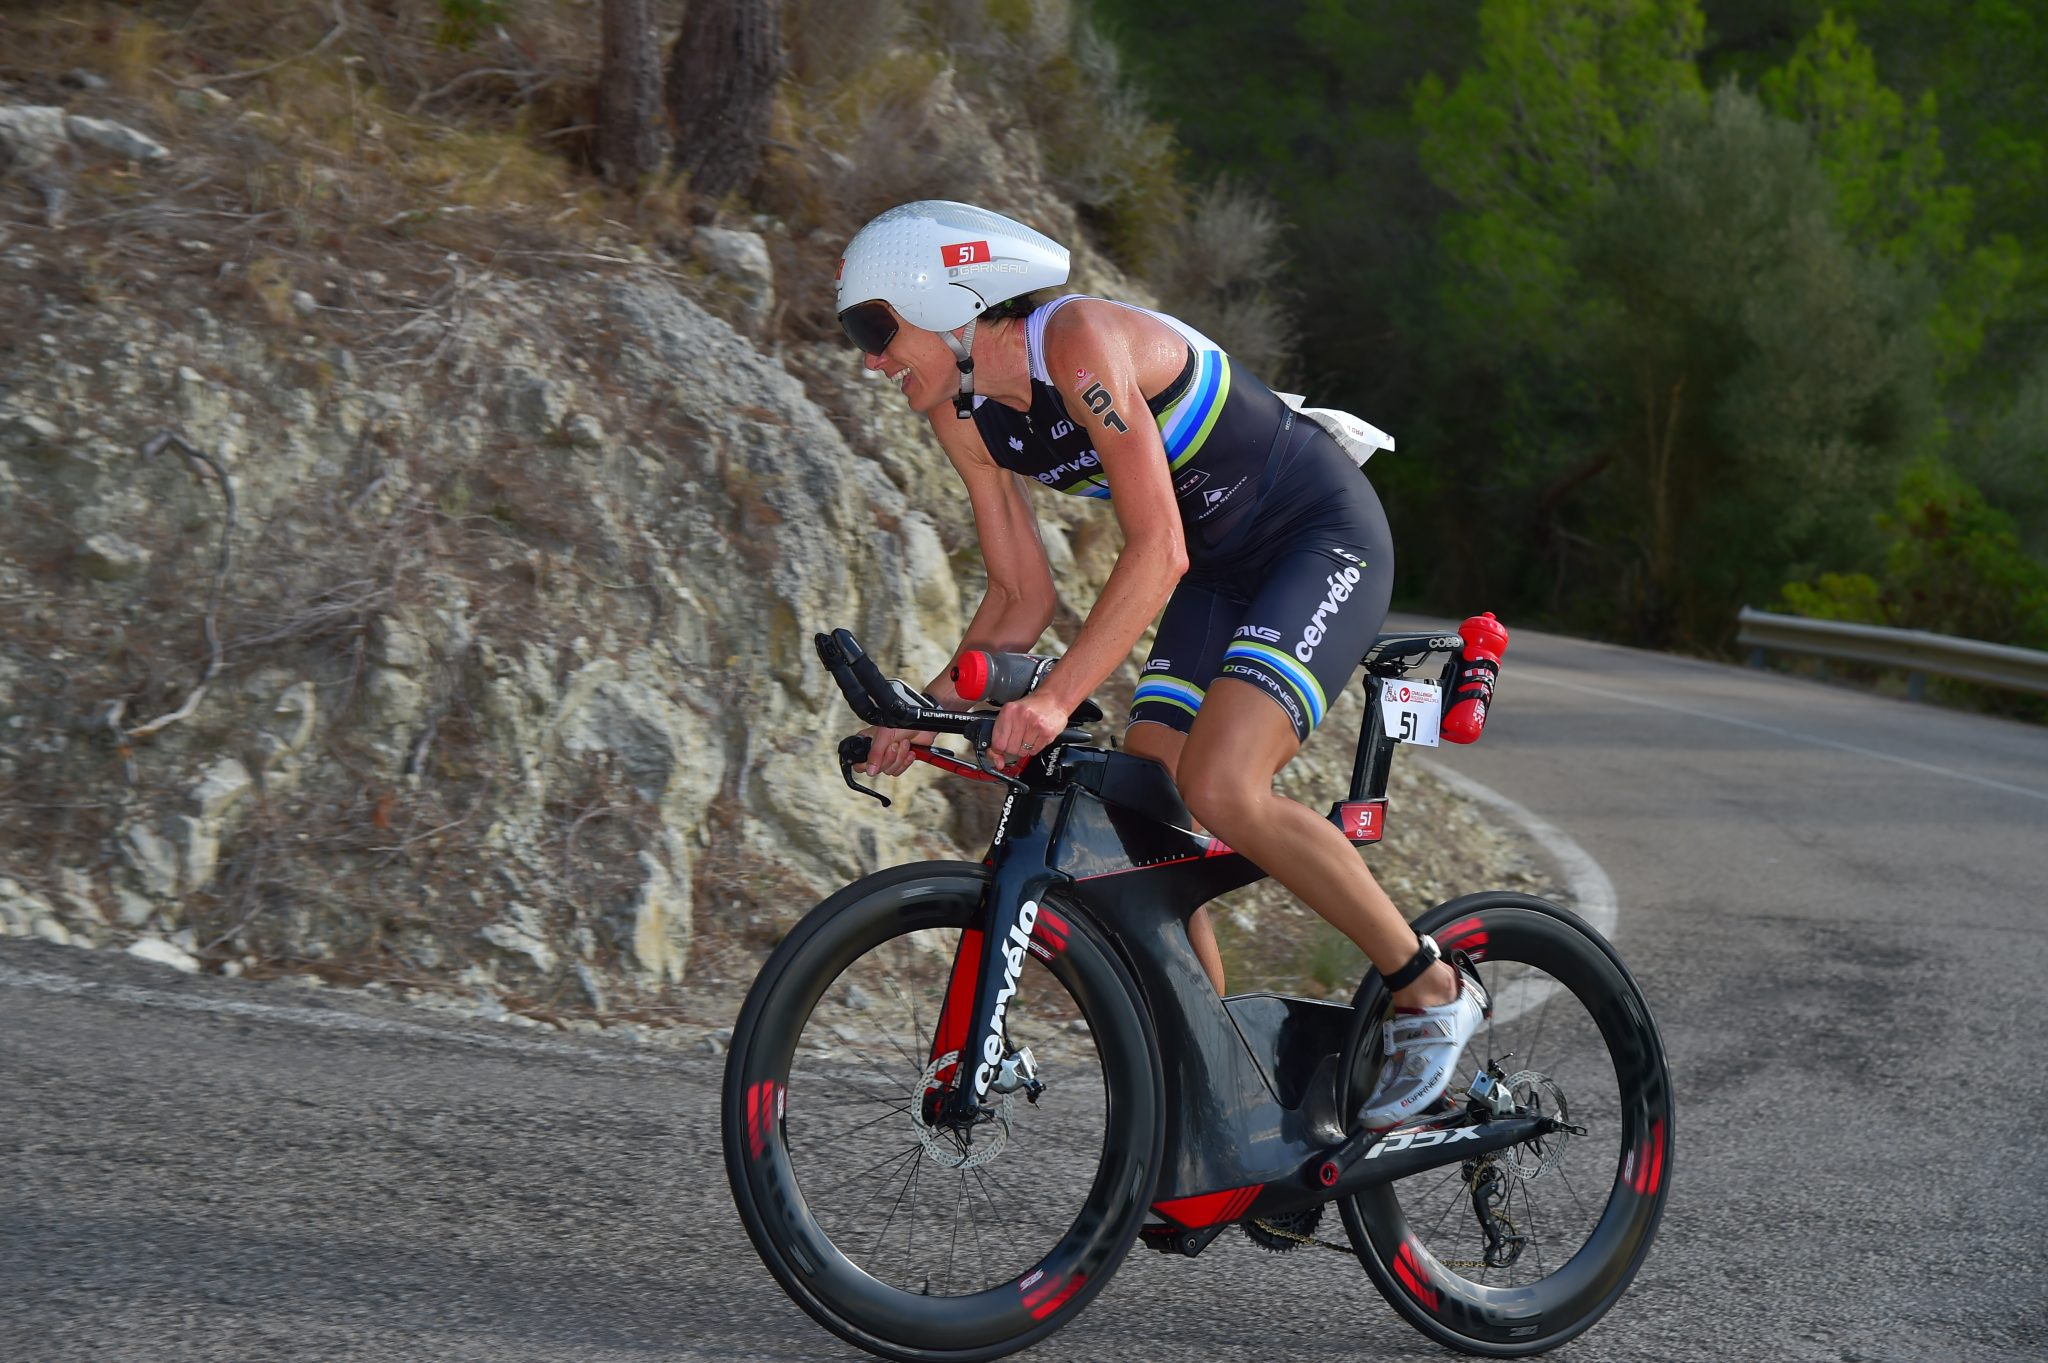 Heather Wurtele Charges to Challenge Peguera-MallorcaVictory